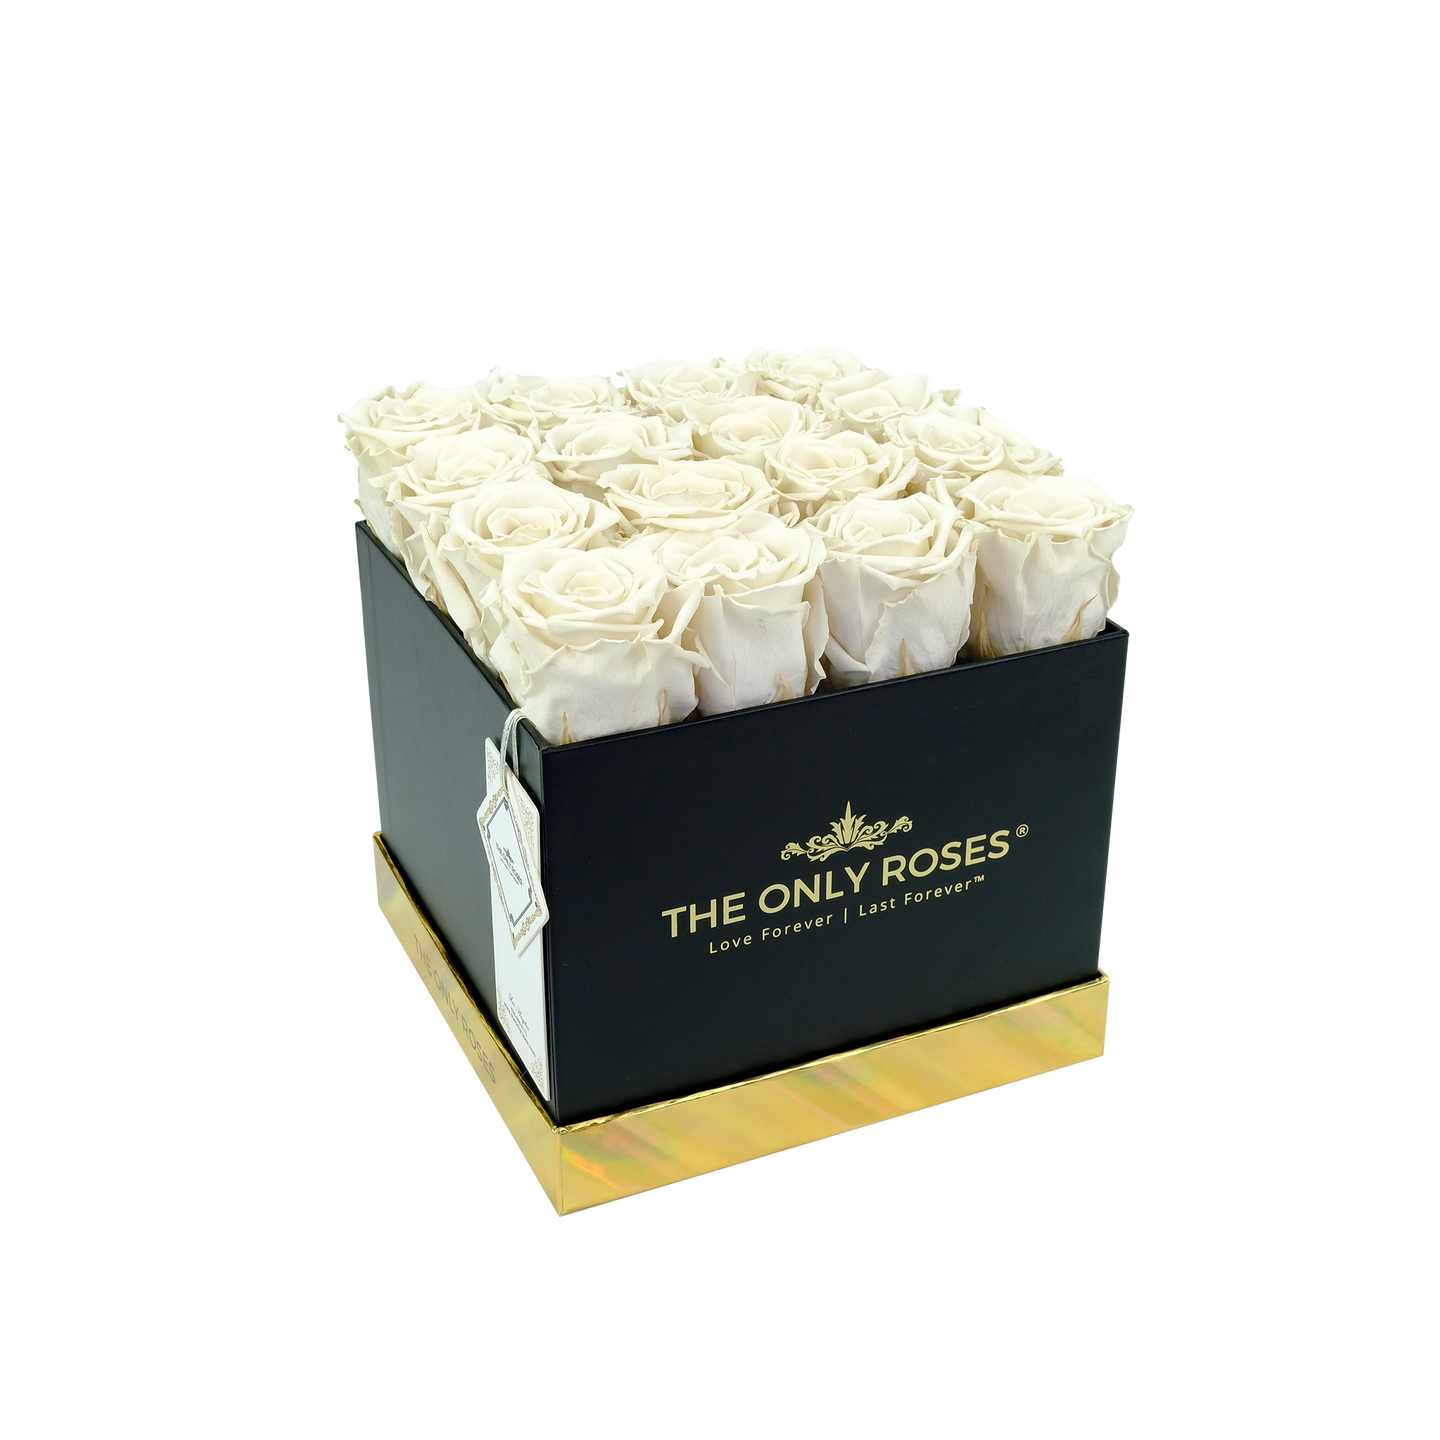 White Preserved Roses | Square Black Huggy Rose Box - The Only Roses